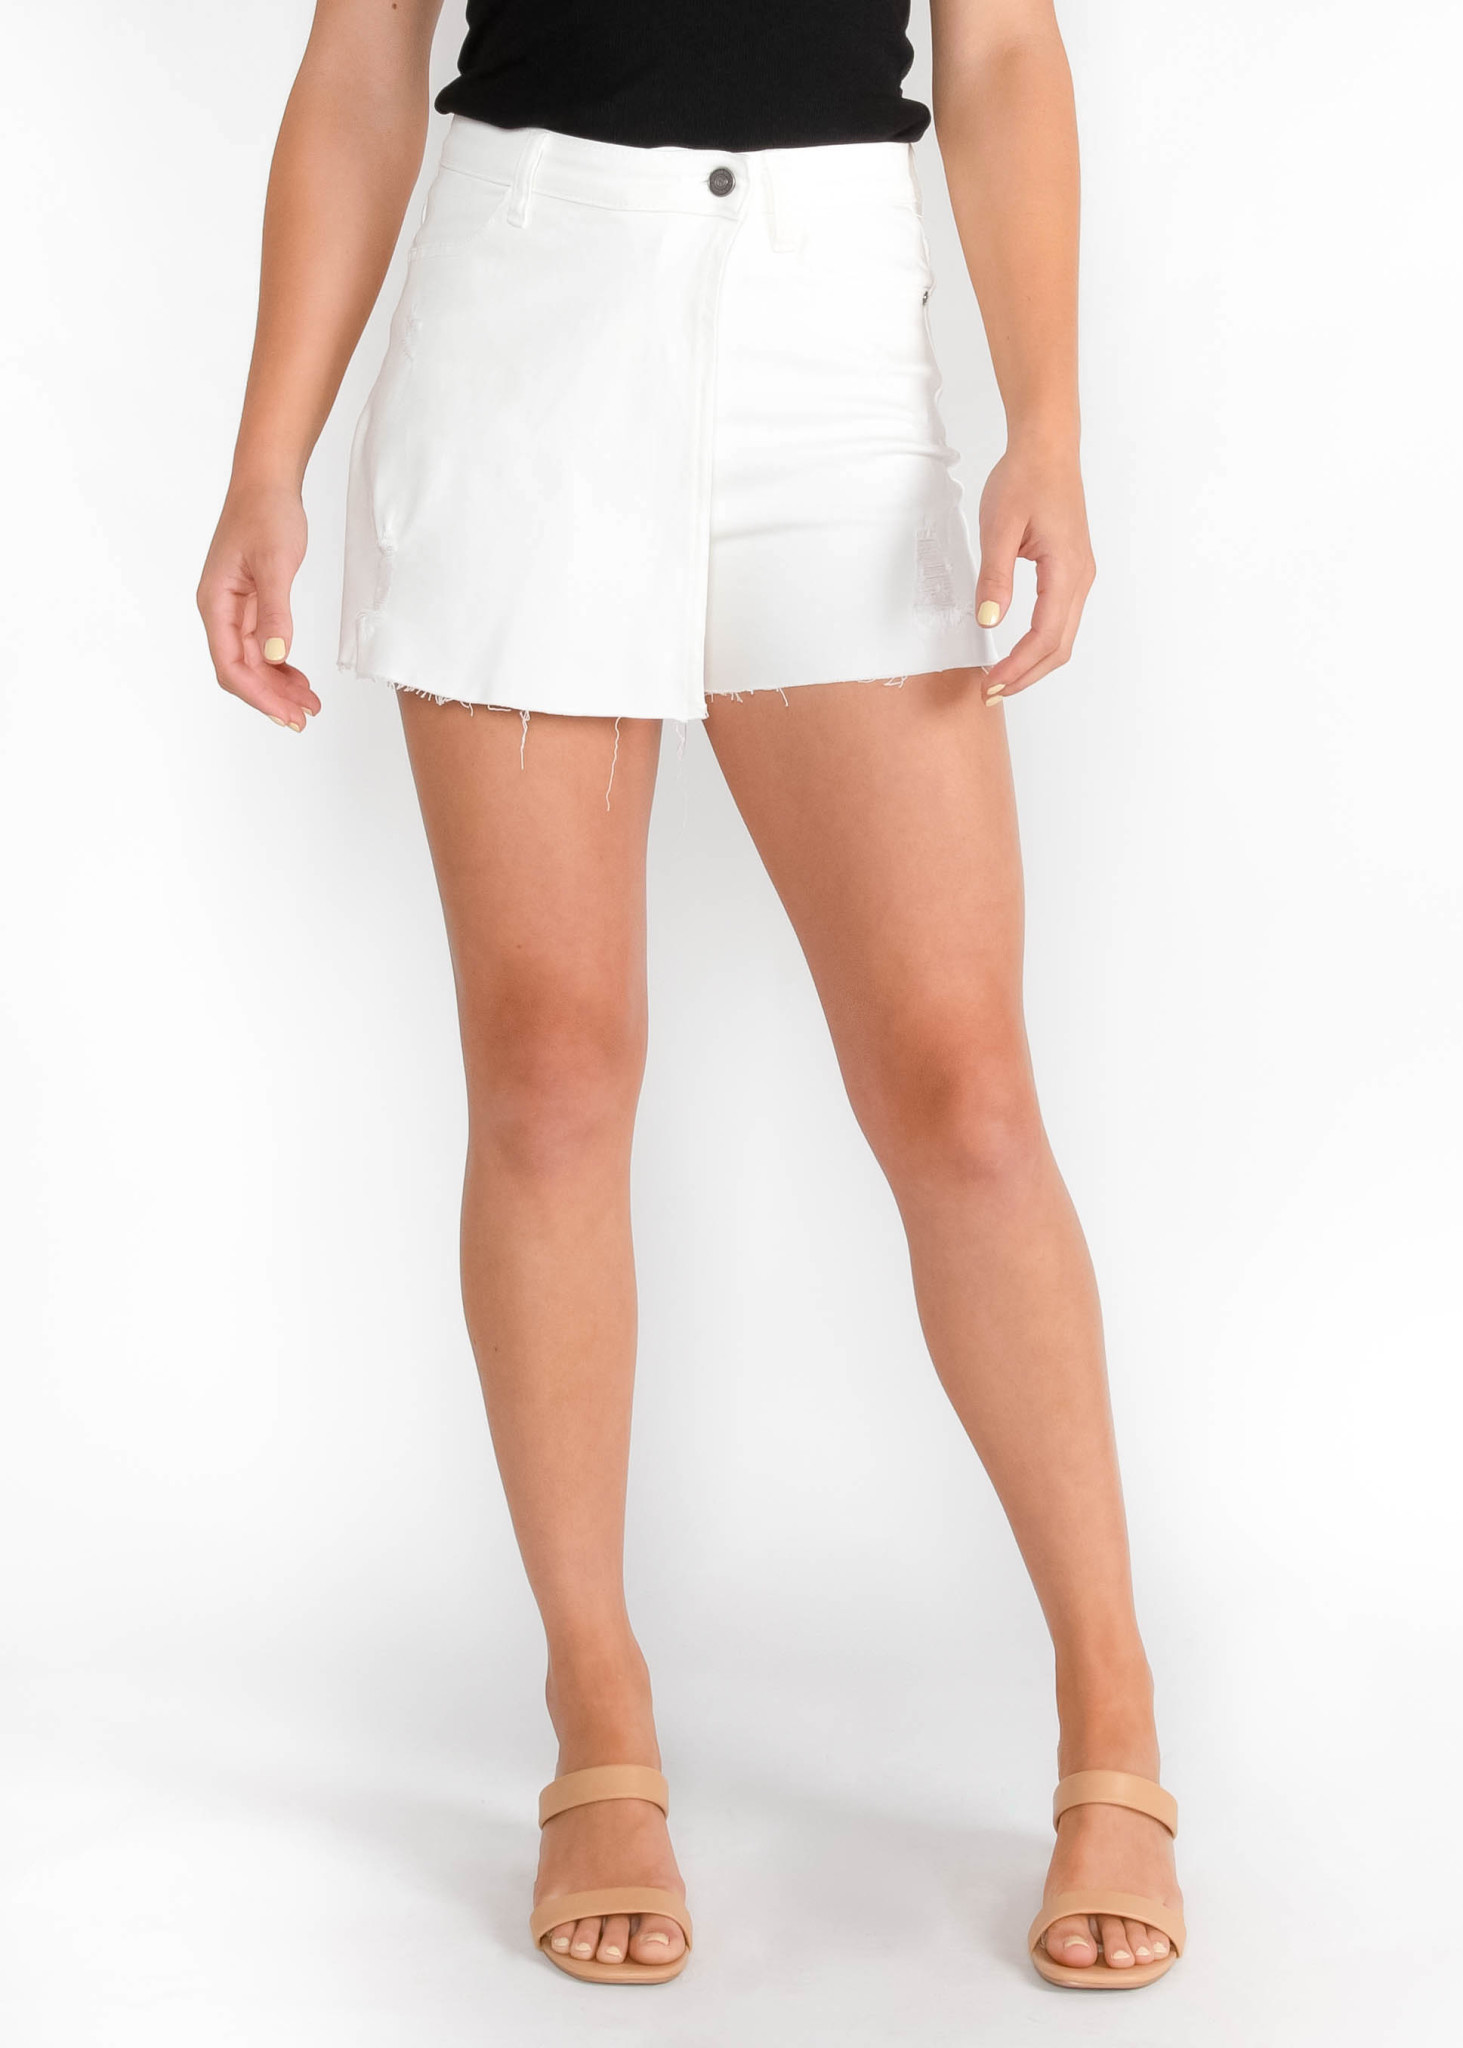 SUMMER CRUSH WHITE DENIM SKORT